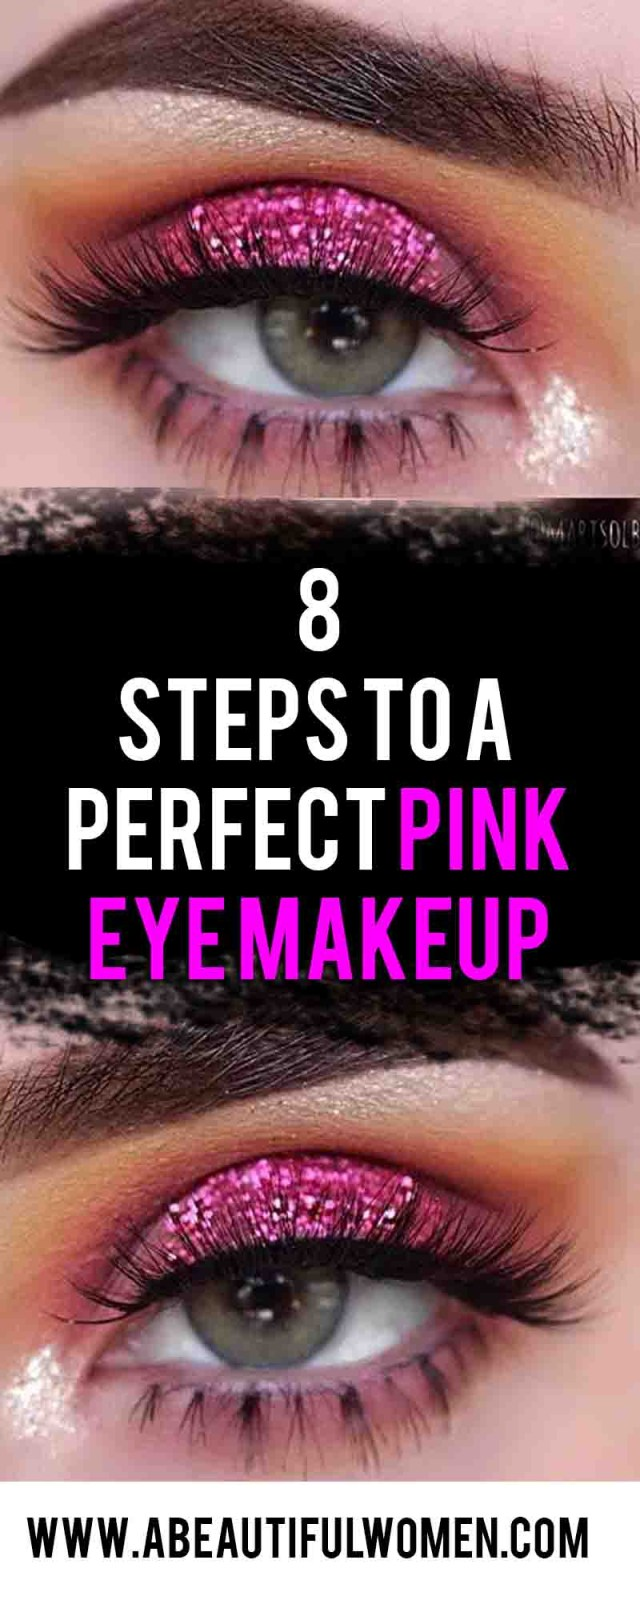 How To Do Perfect Eye Makeup 8 Steps To A Perfect Pink Eye Makeup Abeautiful Women